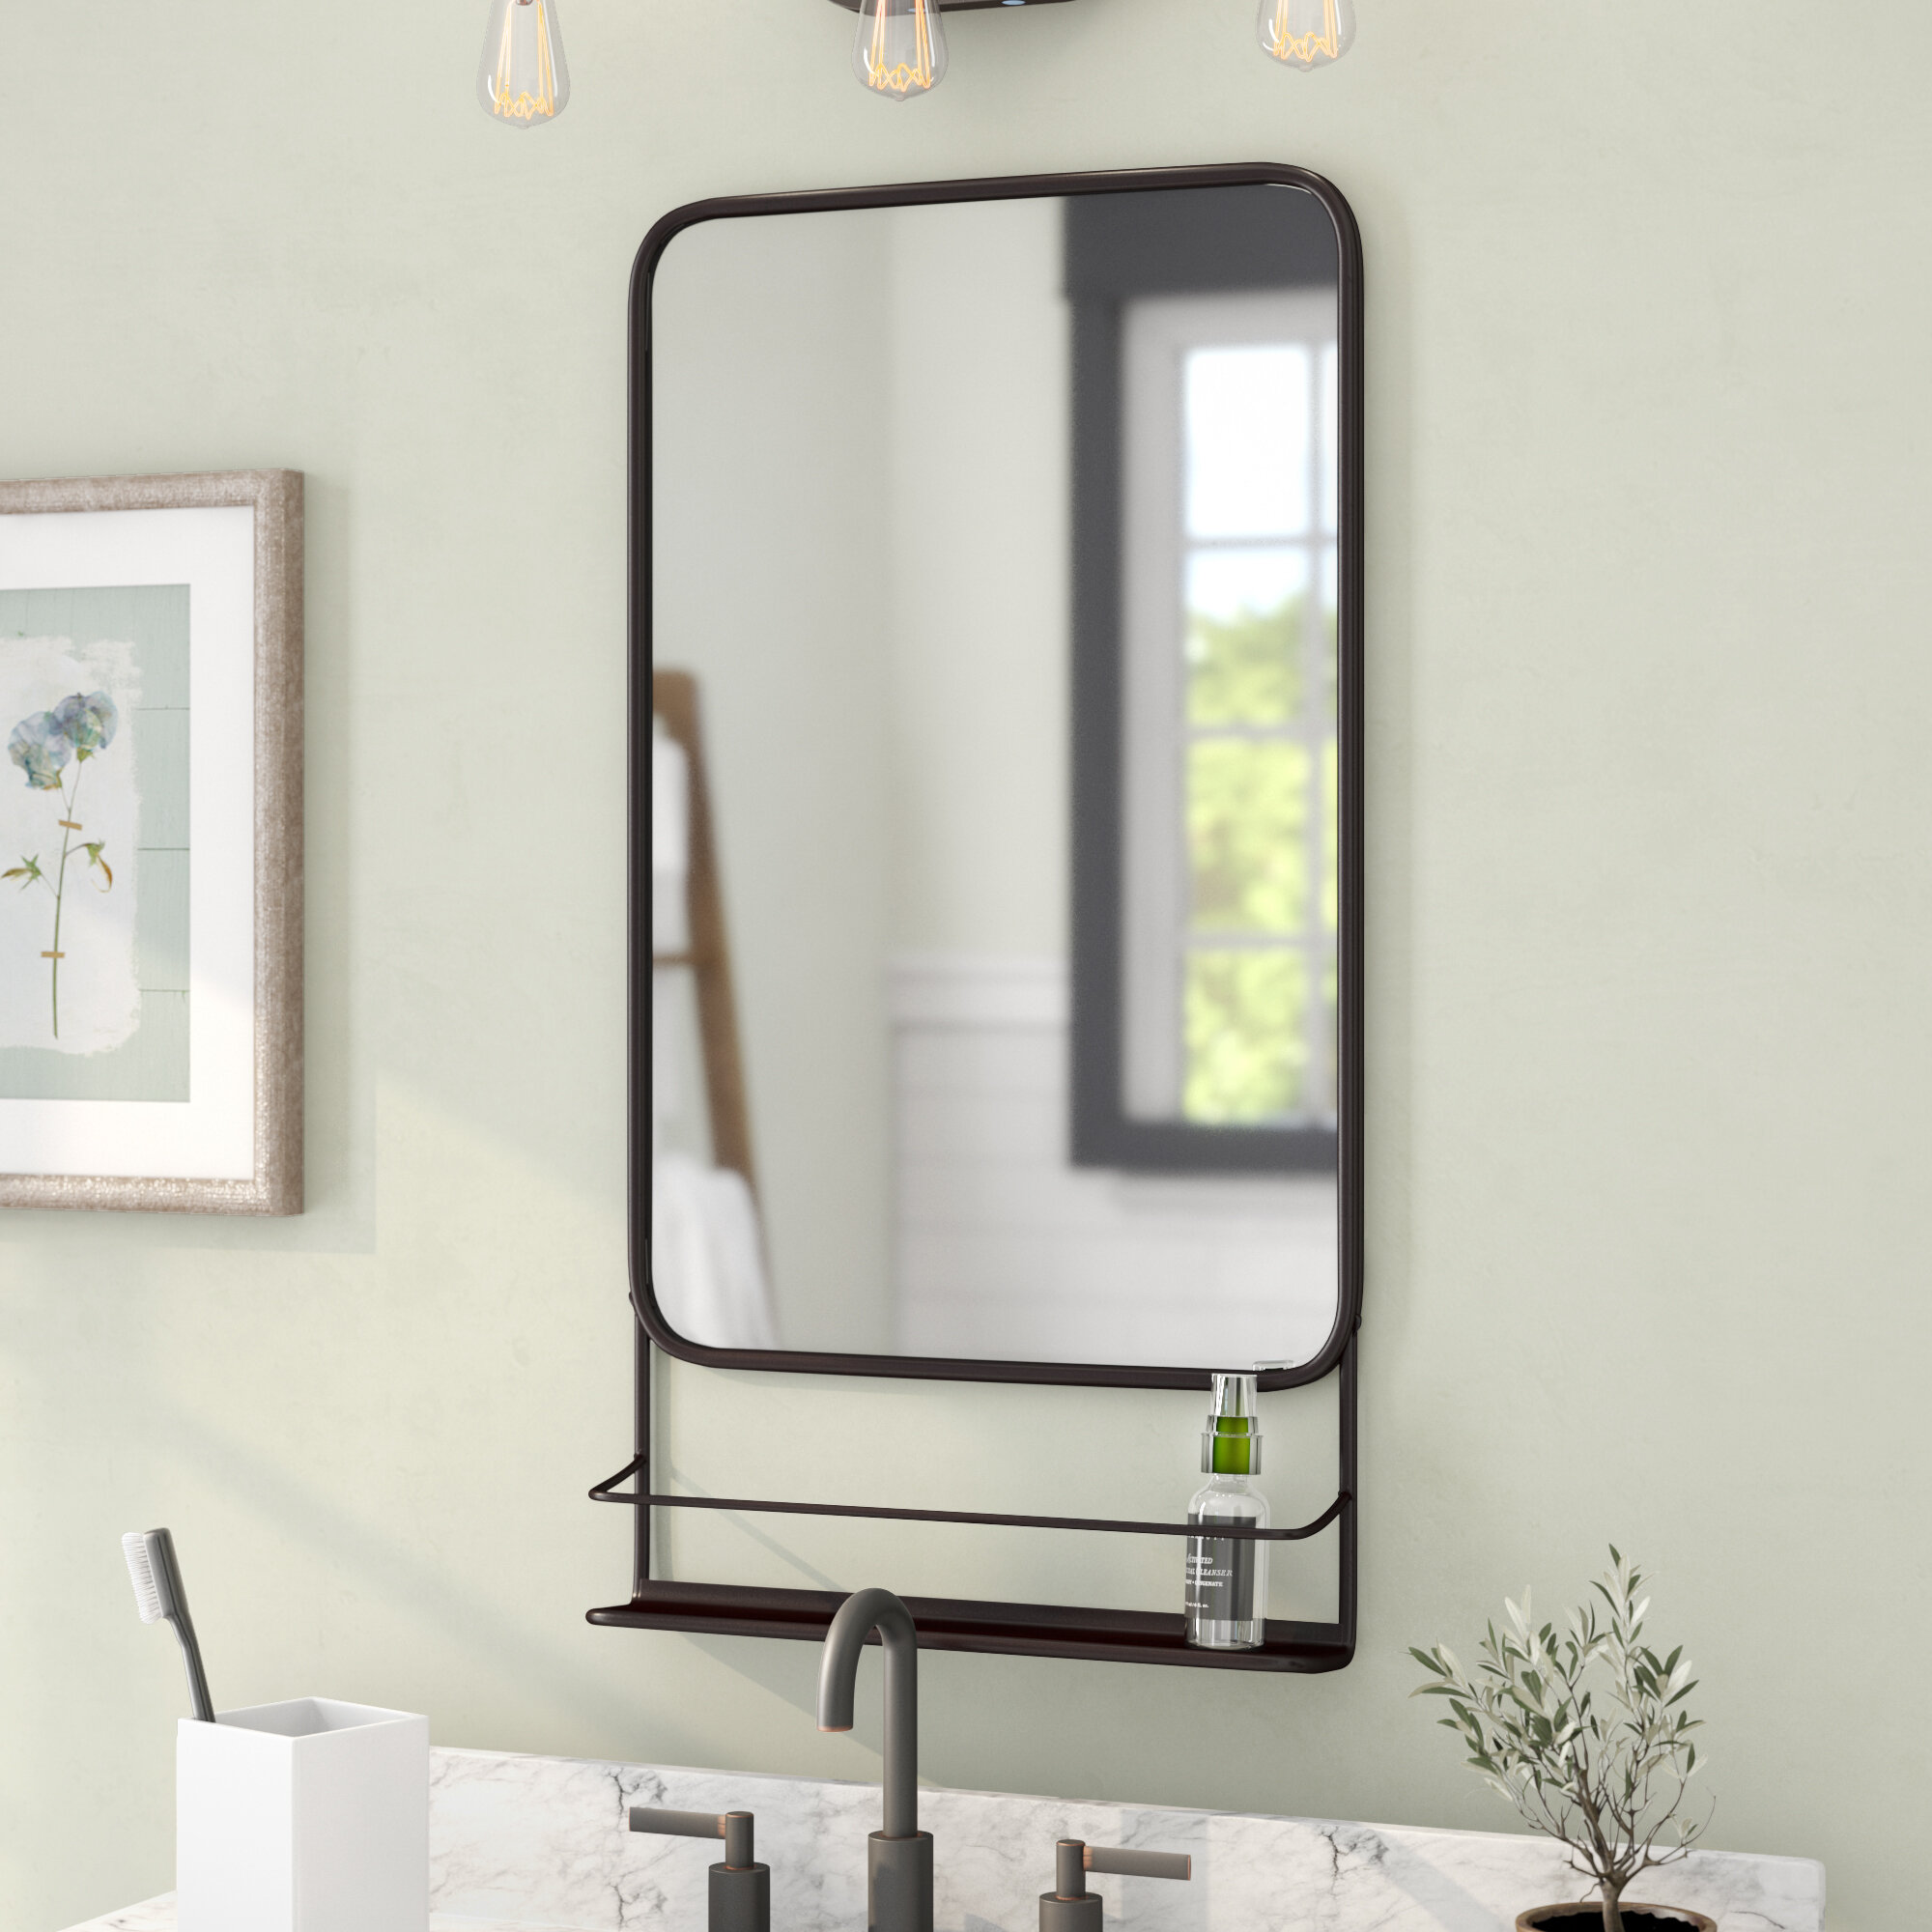 Gracie Oaks Amata Metal Wall Mounted Distressed Accent Mirror Reviews Wayfair